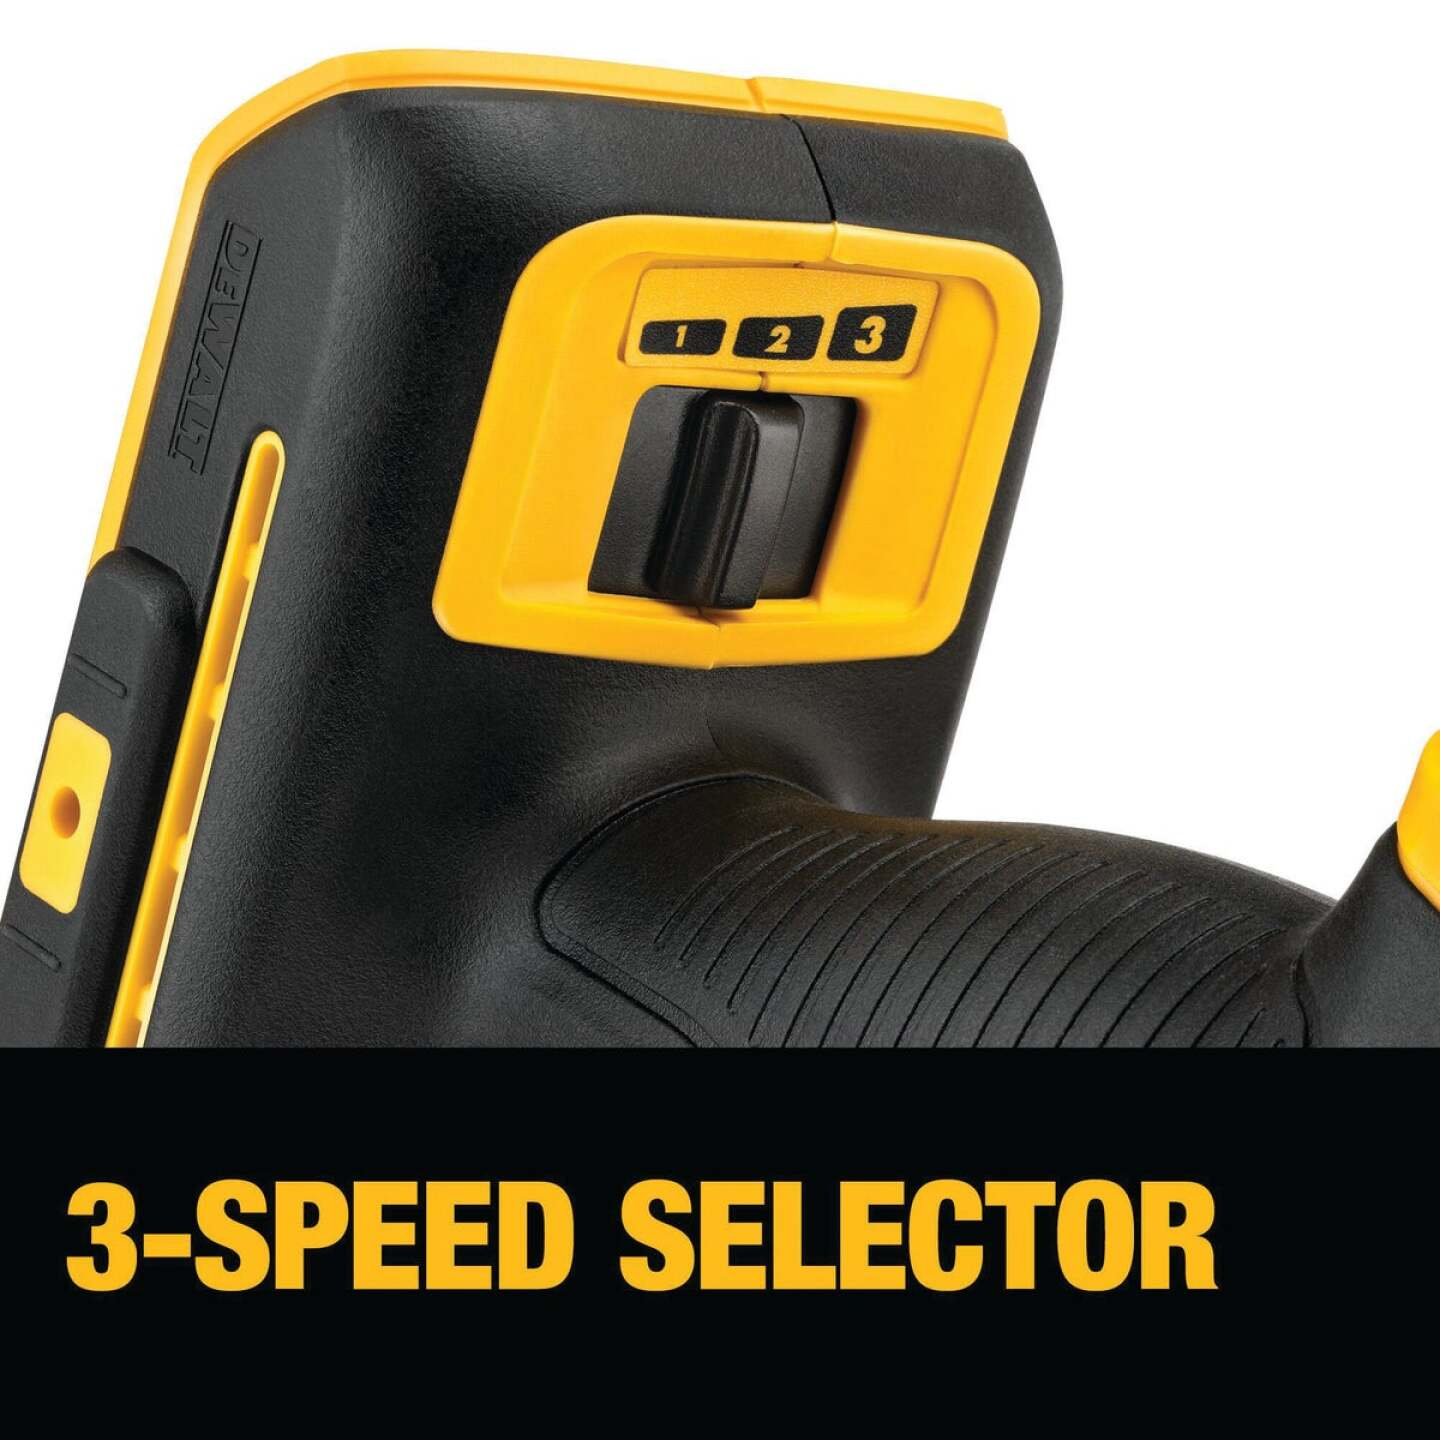 DeWalt 20 Volt MAX XR Lithium-Ion Brushless Cordless Oscillating Tool (Bare Tool) Image 4